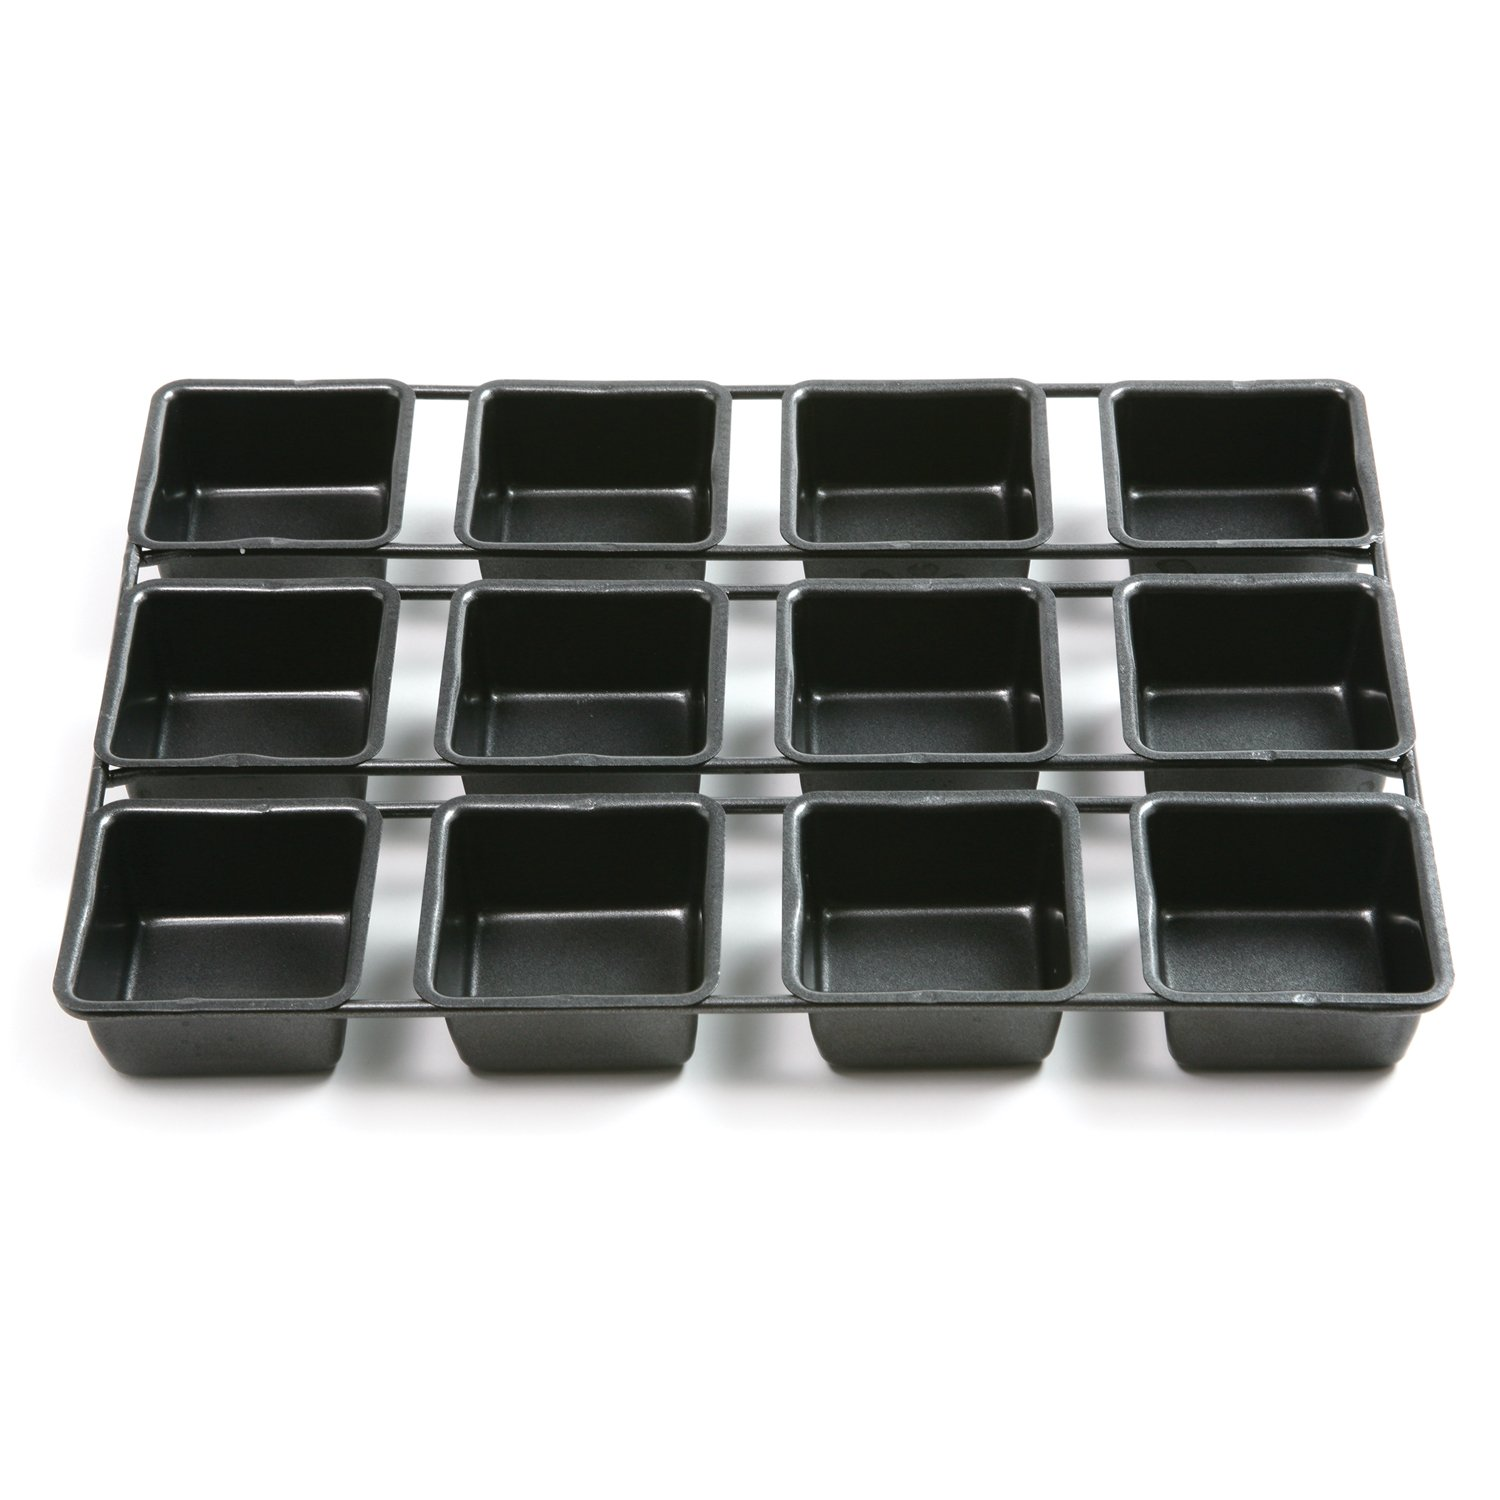 Norpro 3998 Nonstick 12-Cavity Linking Brownie Muffin Cupcake Cake Pan, Squares